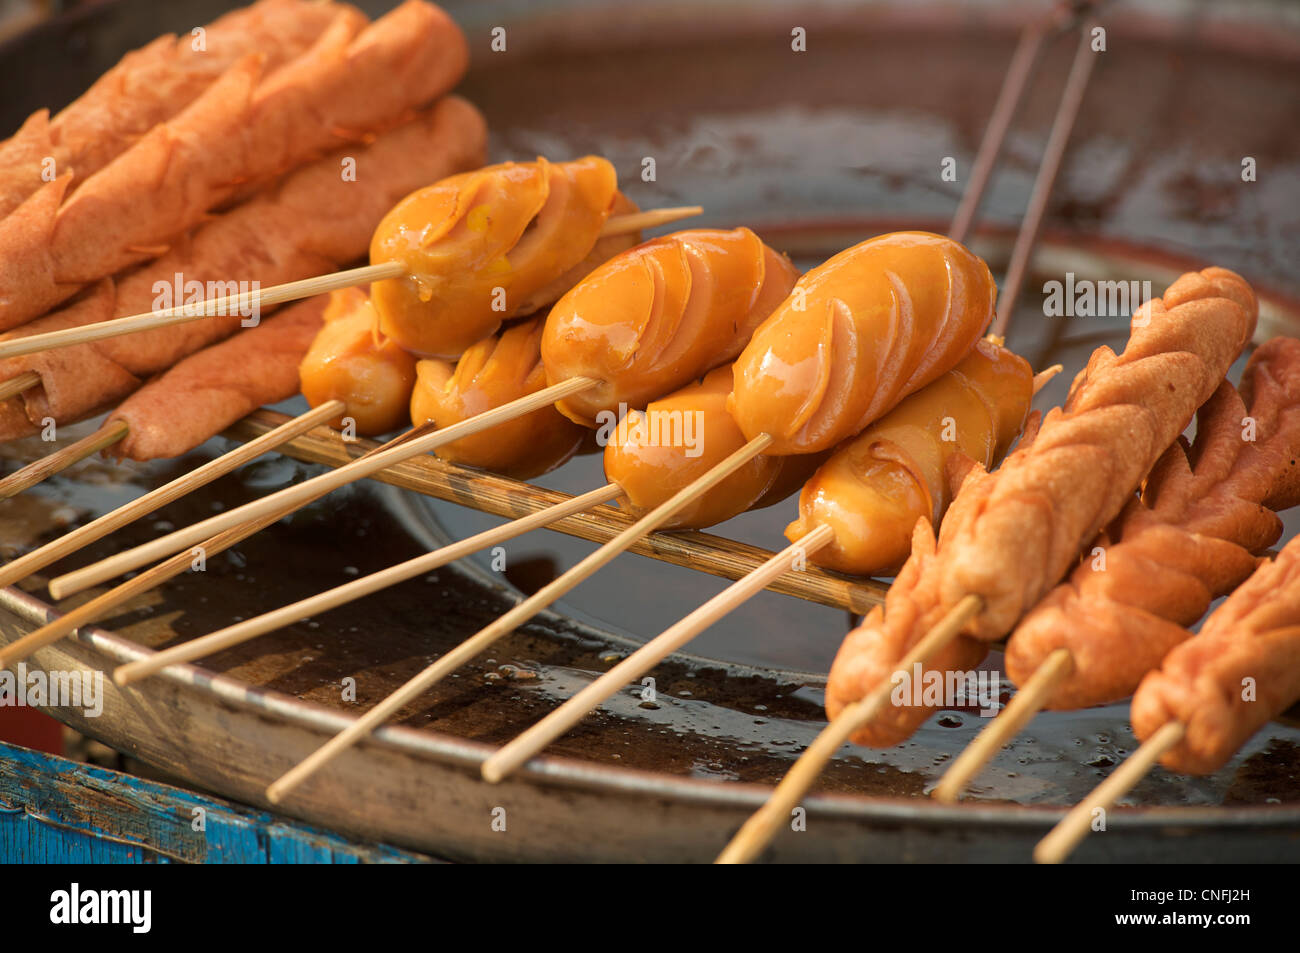 fried seafood sticks for sale at market. Burma. Myanmar - Stock Image